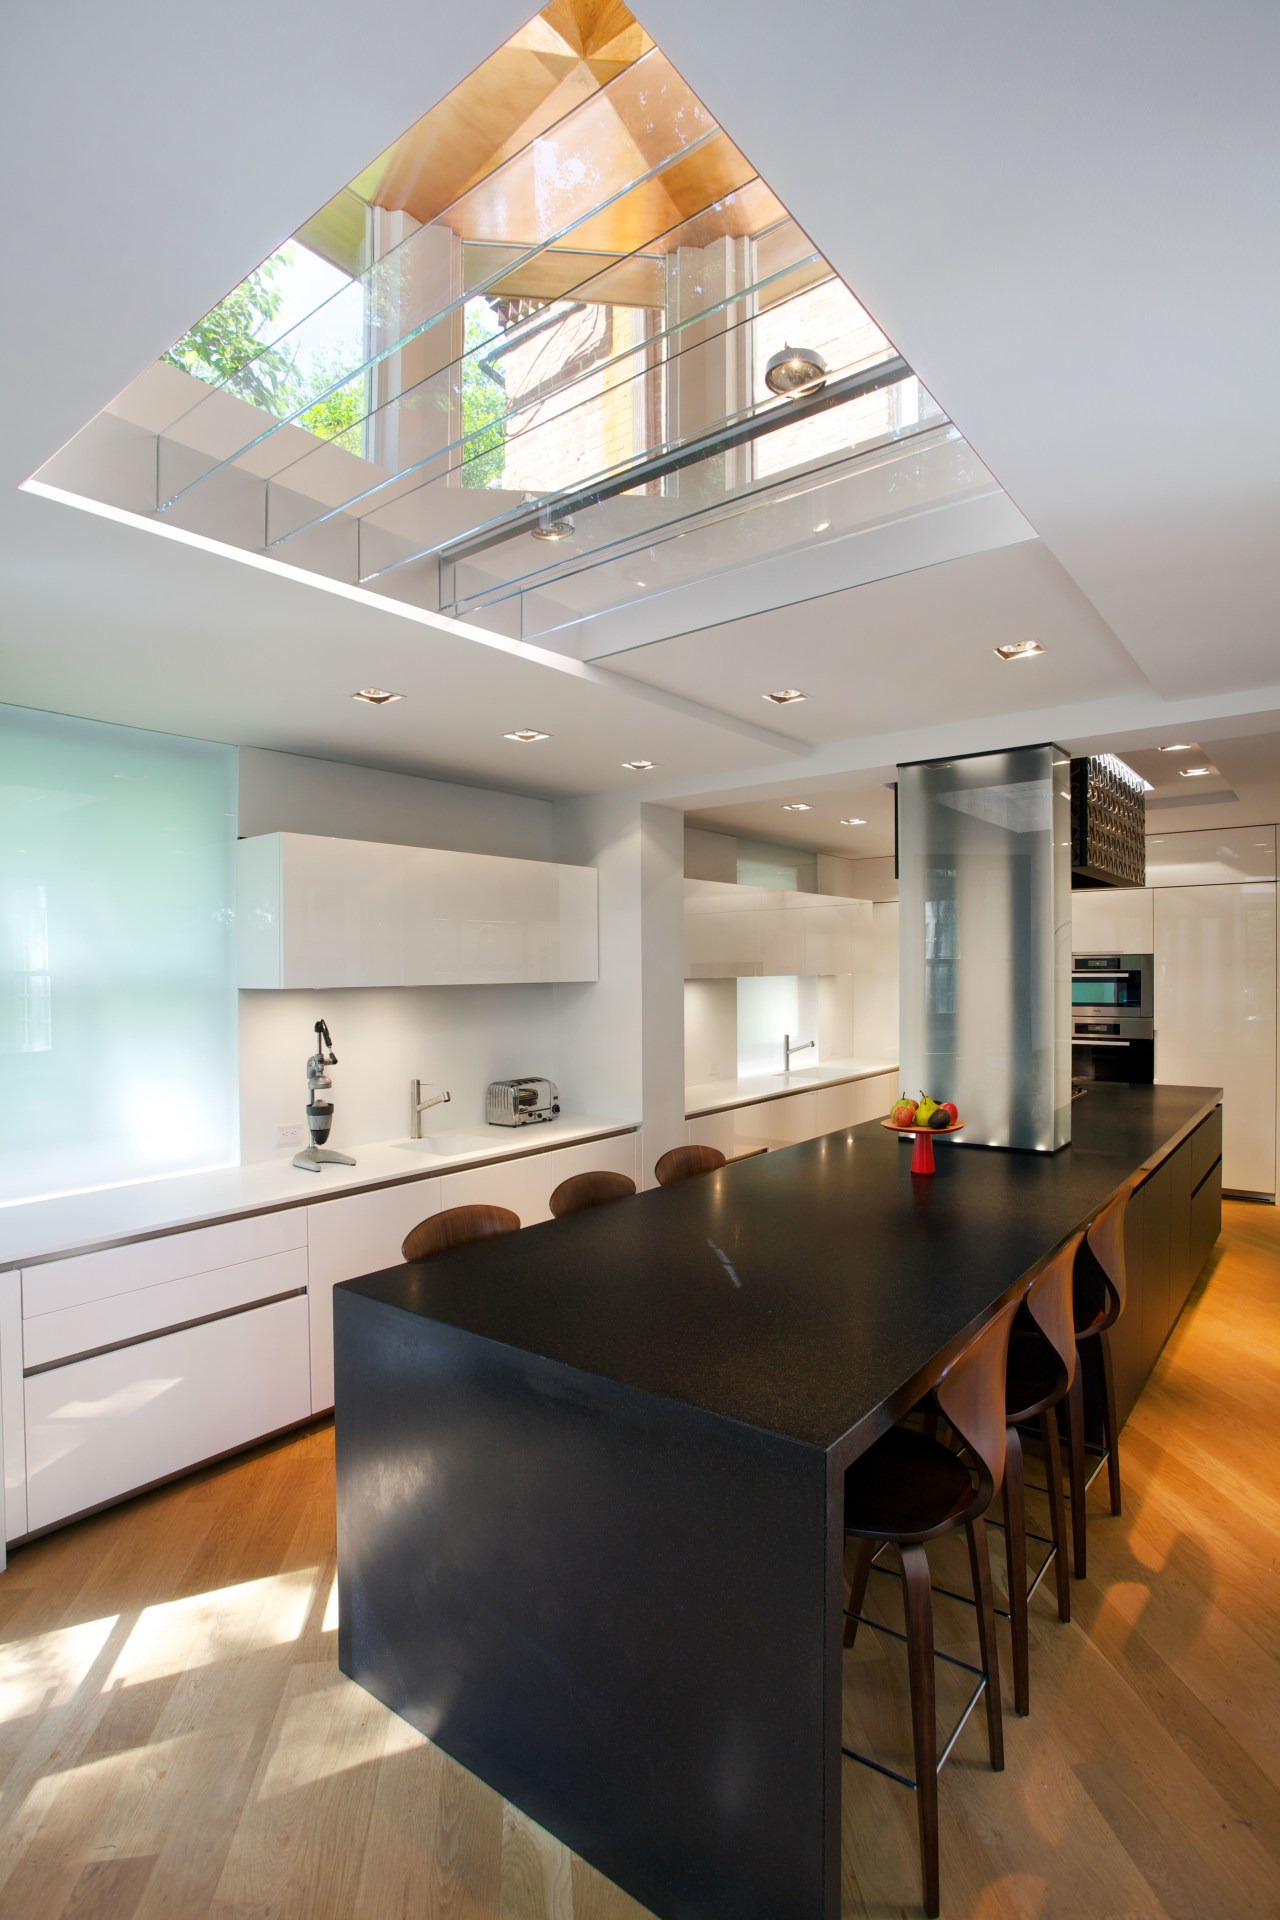 An existing lantern light above the island was architecture, ceiling, countertop, daylighting, house, interior design, kitchen, real estate, table, gray